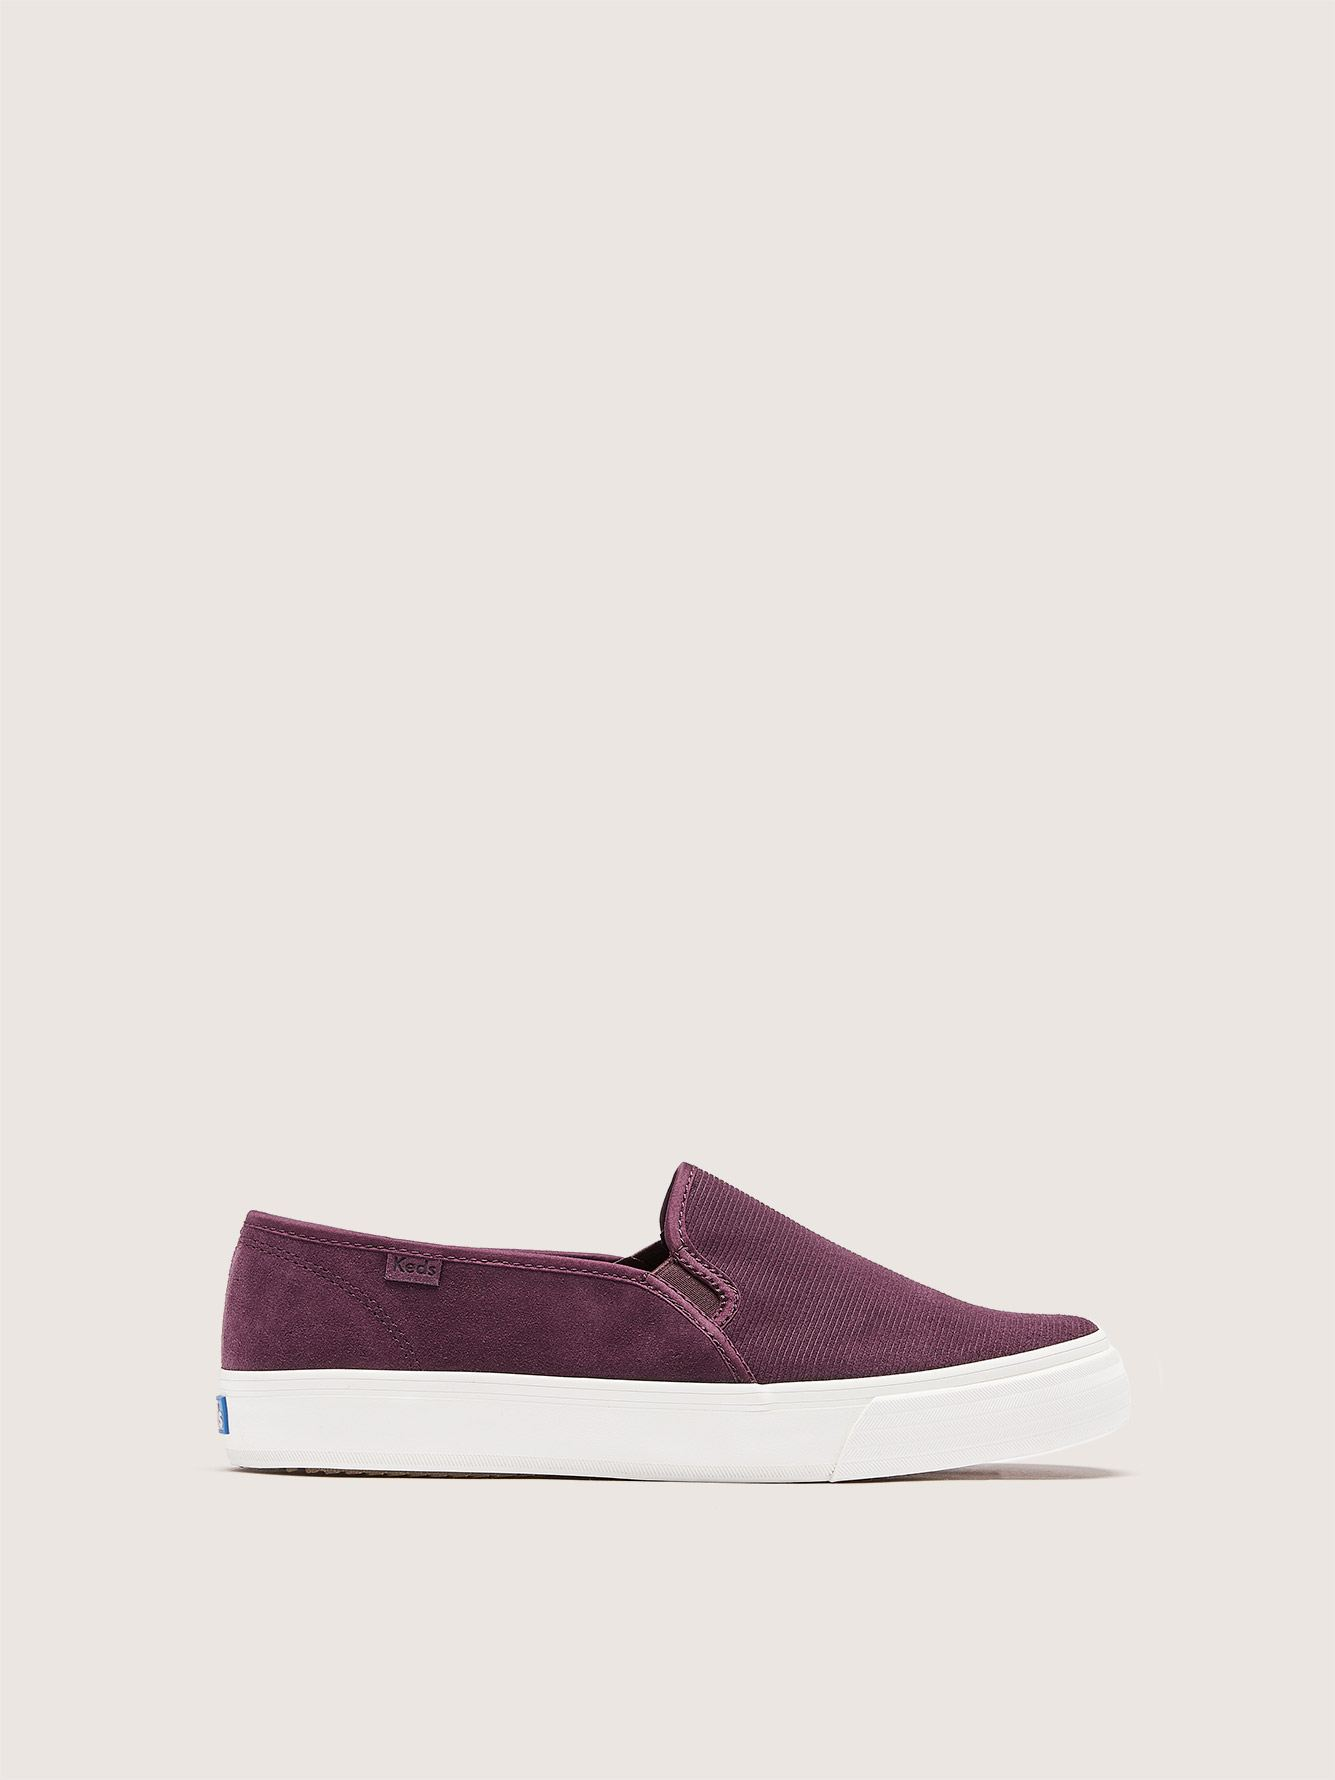 Keds, Double Decker - Wide Width Slip On Sneakers